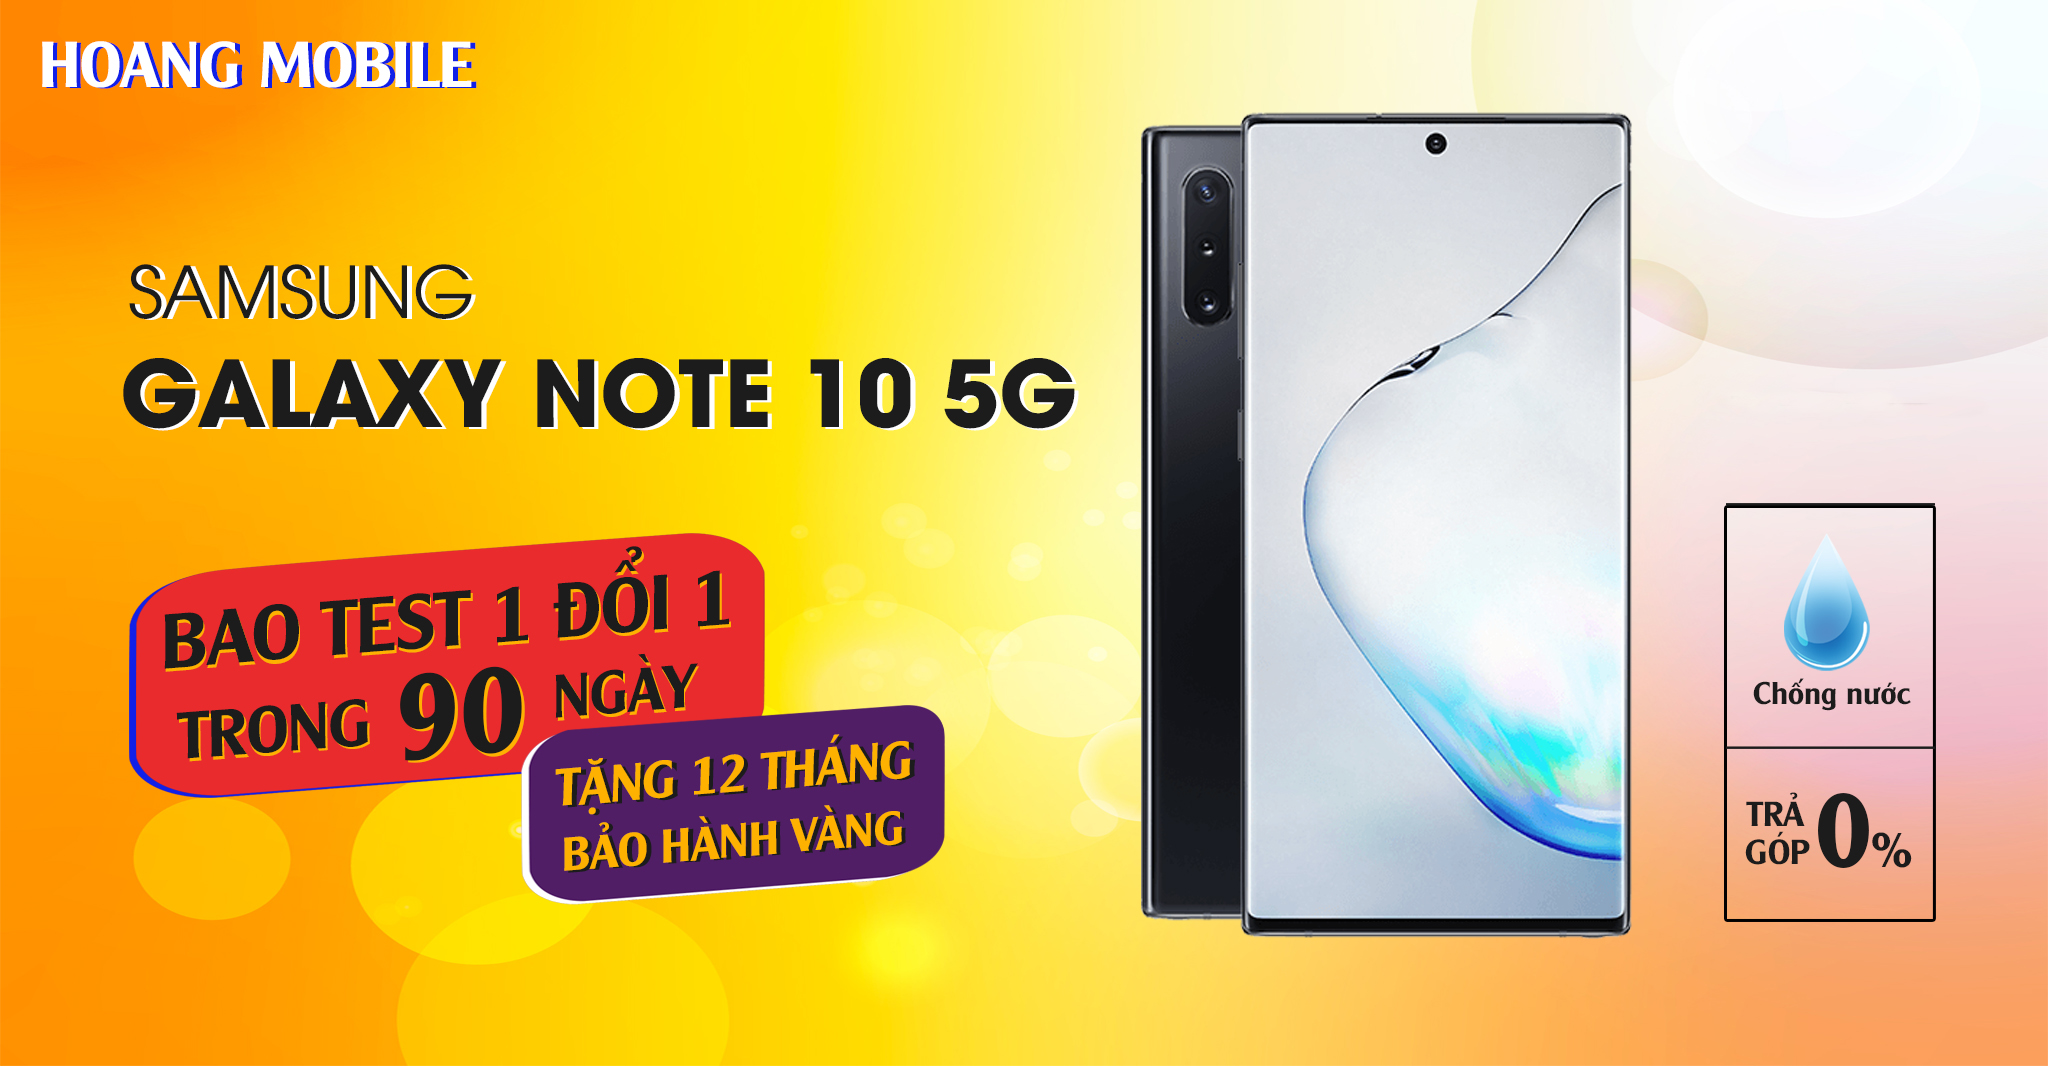 Samsung Galaxy Note 10 Plus 5G 256G 98%